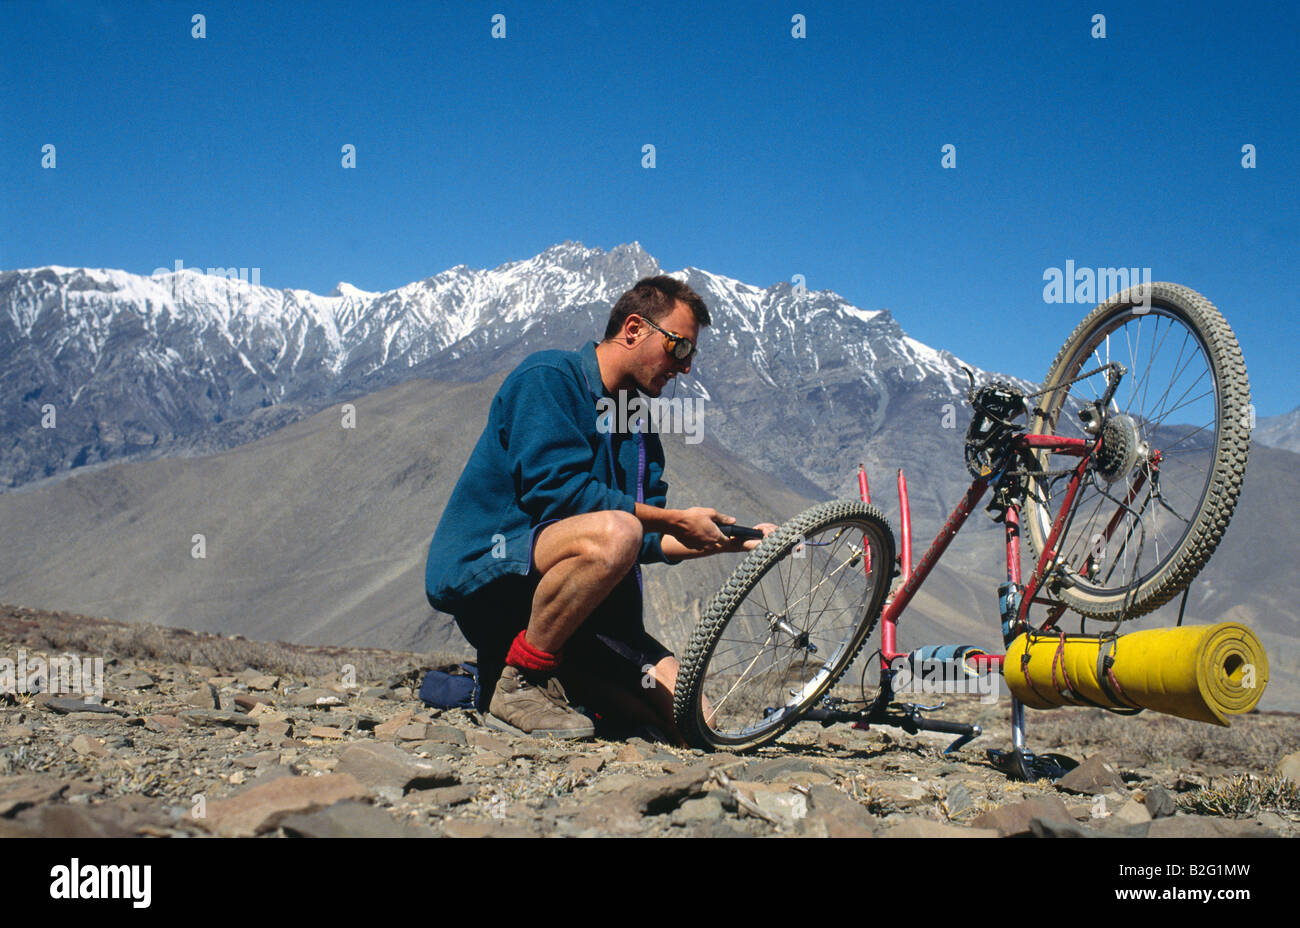 Doug Blane mountain biking around the Annapurna circuit in Himalayan Kingdom of Nepal Nepalese Himalayas Stock Photo